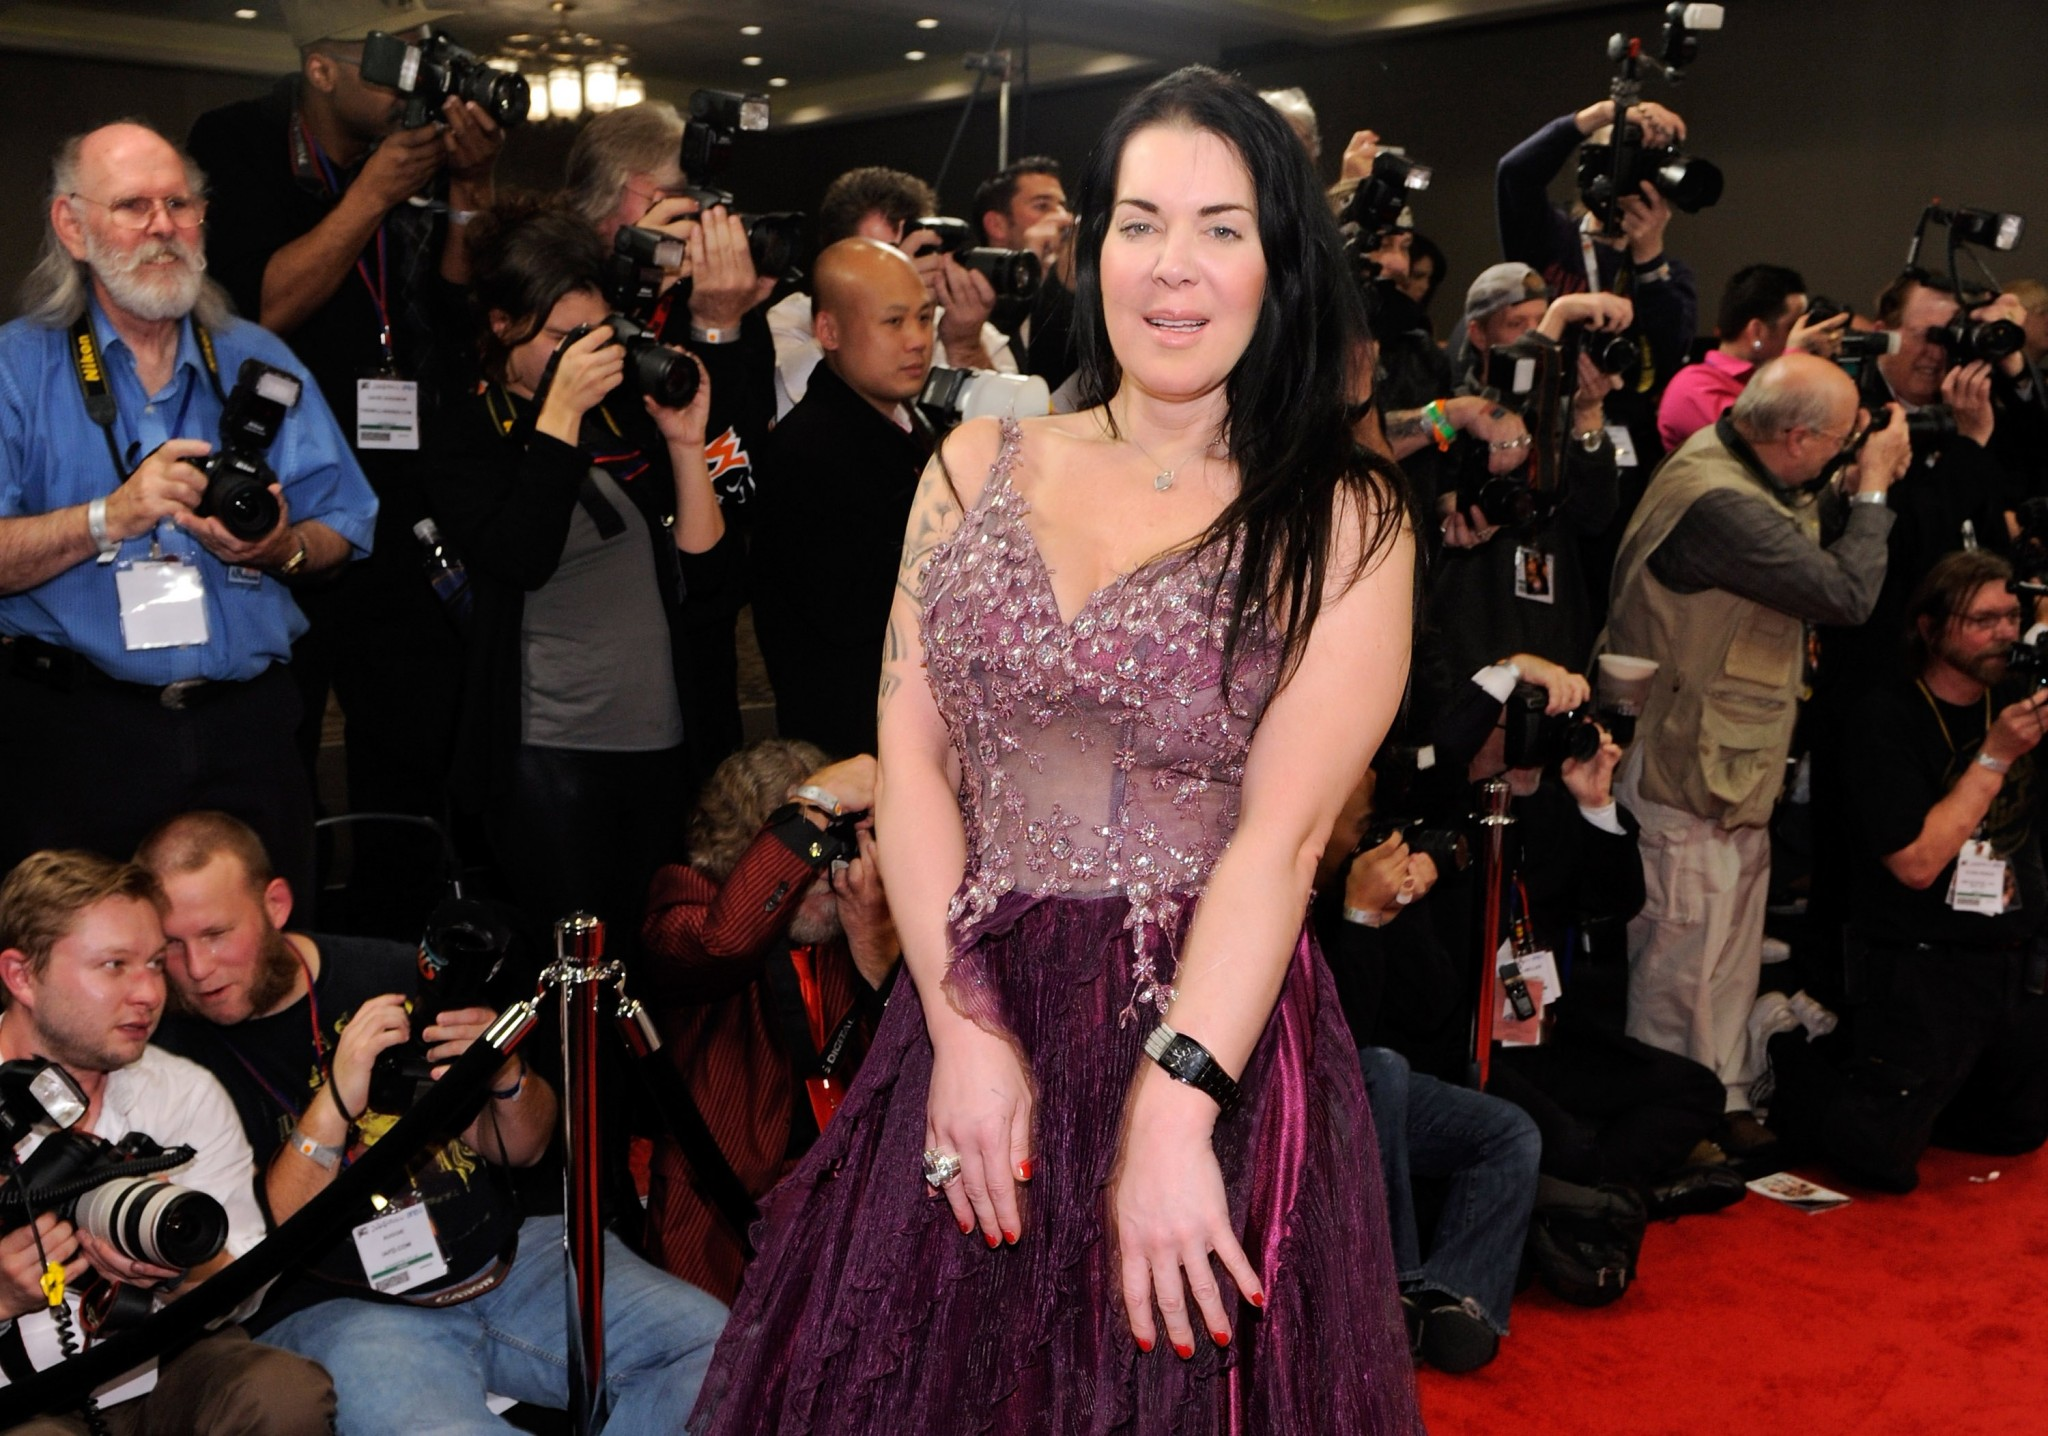 Joanie Laurer also known as Chyna.